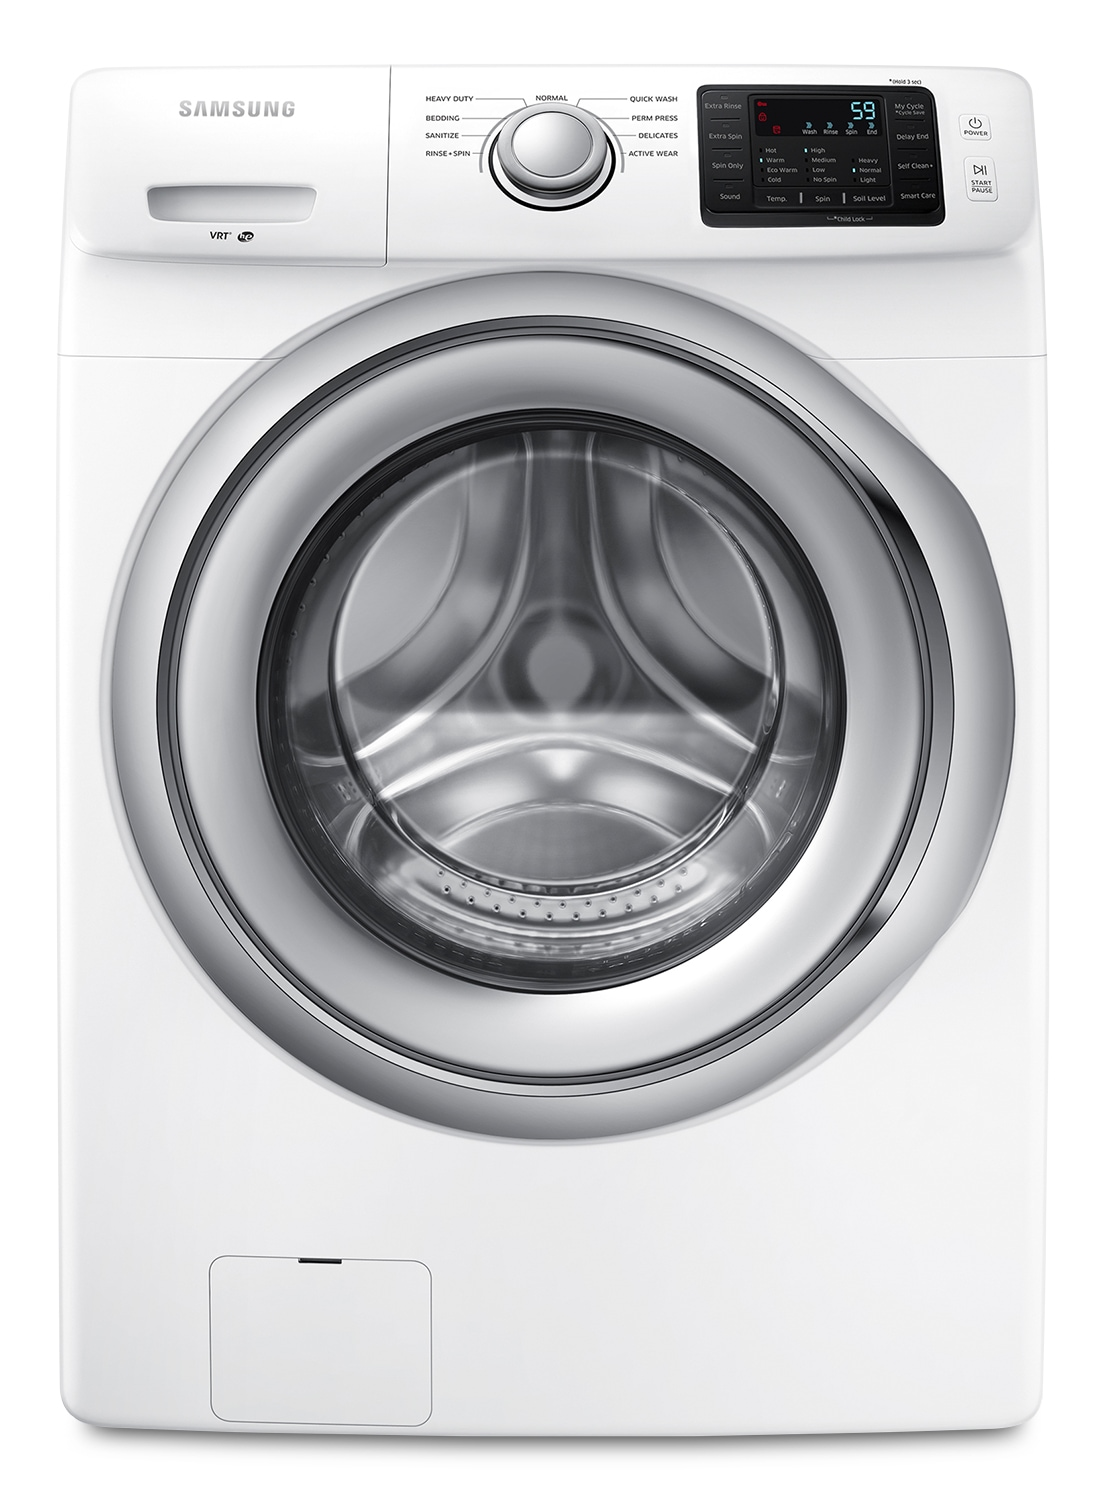 Samsung White Front-Load Washer (4.8 Cu. Ft. IEC) - WF42H5100AW